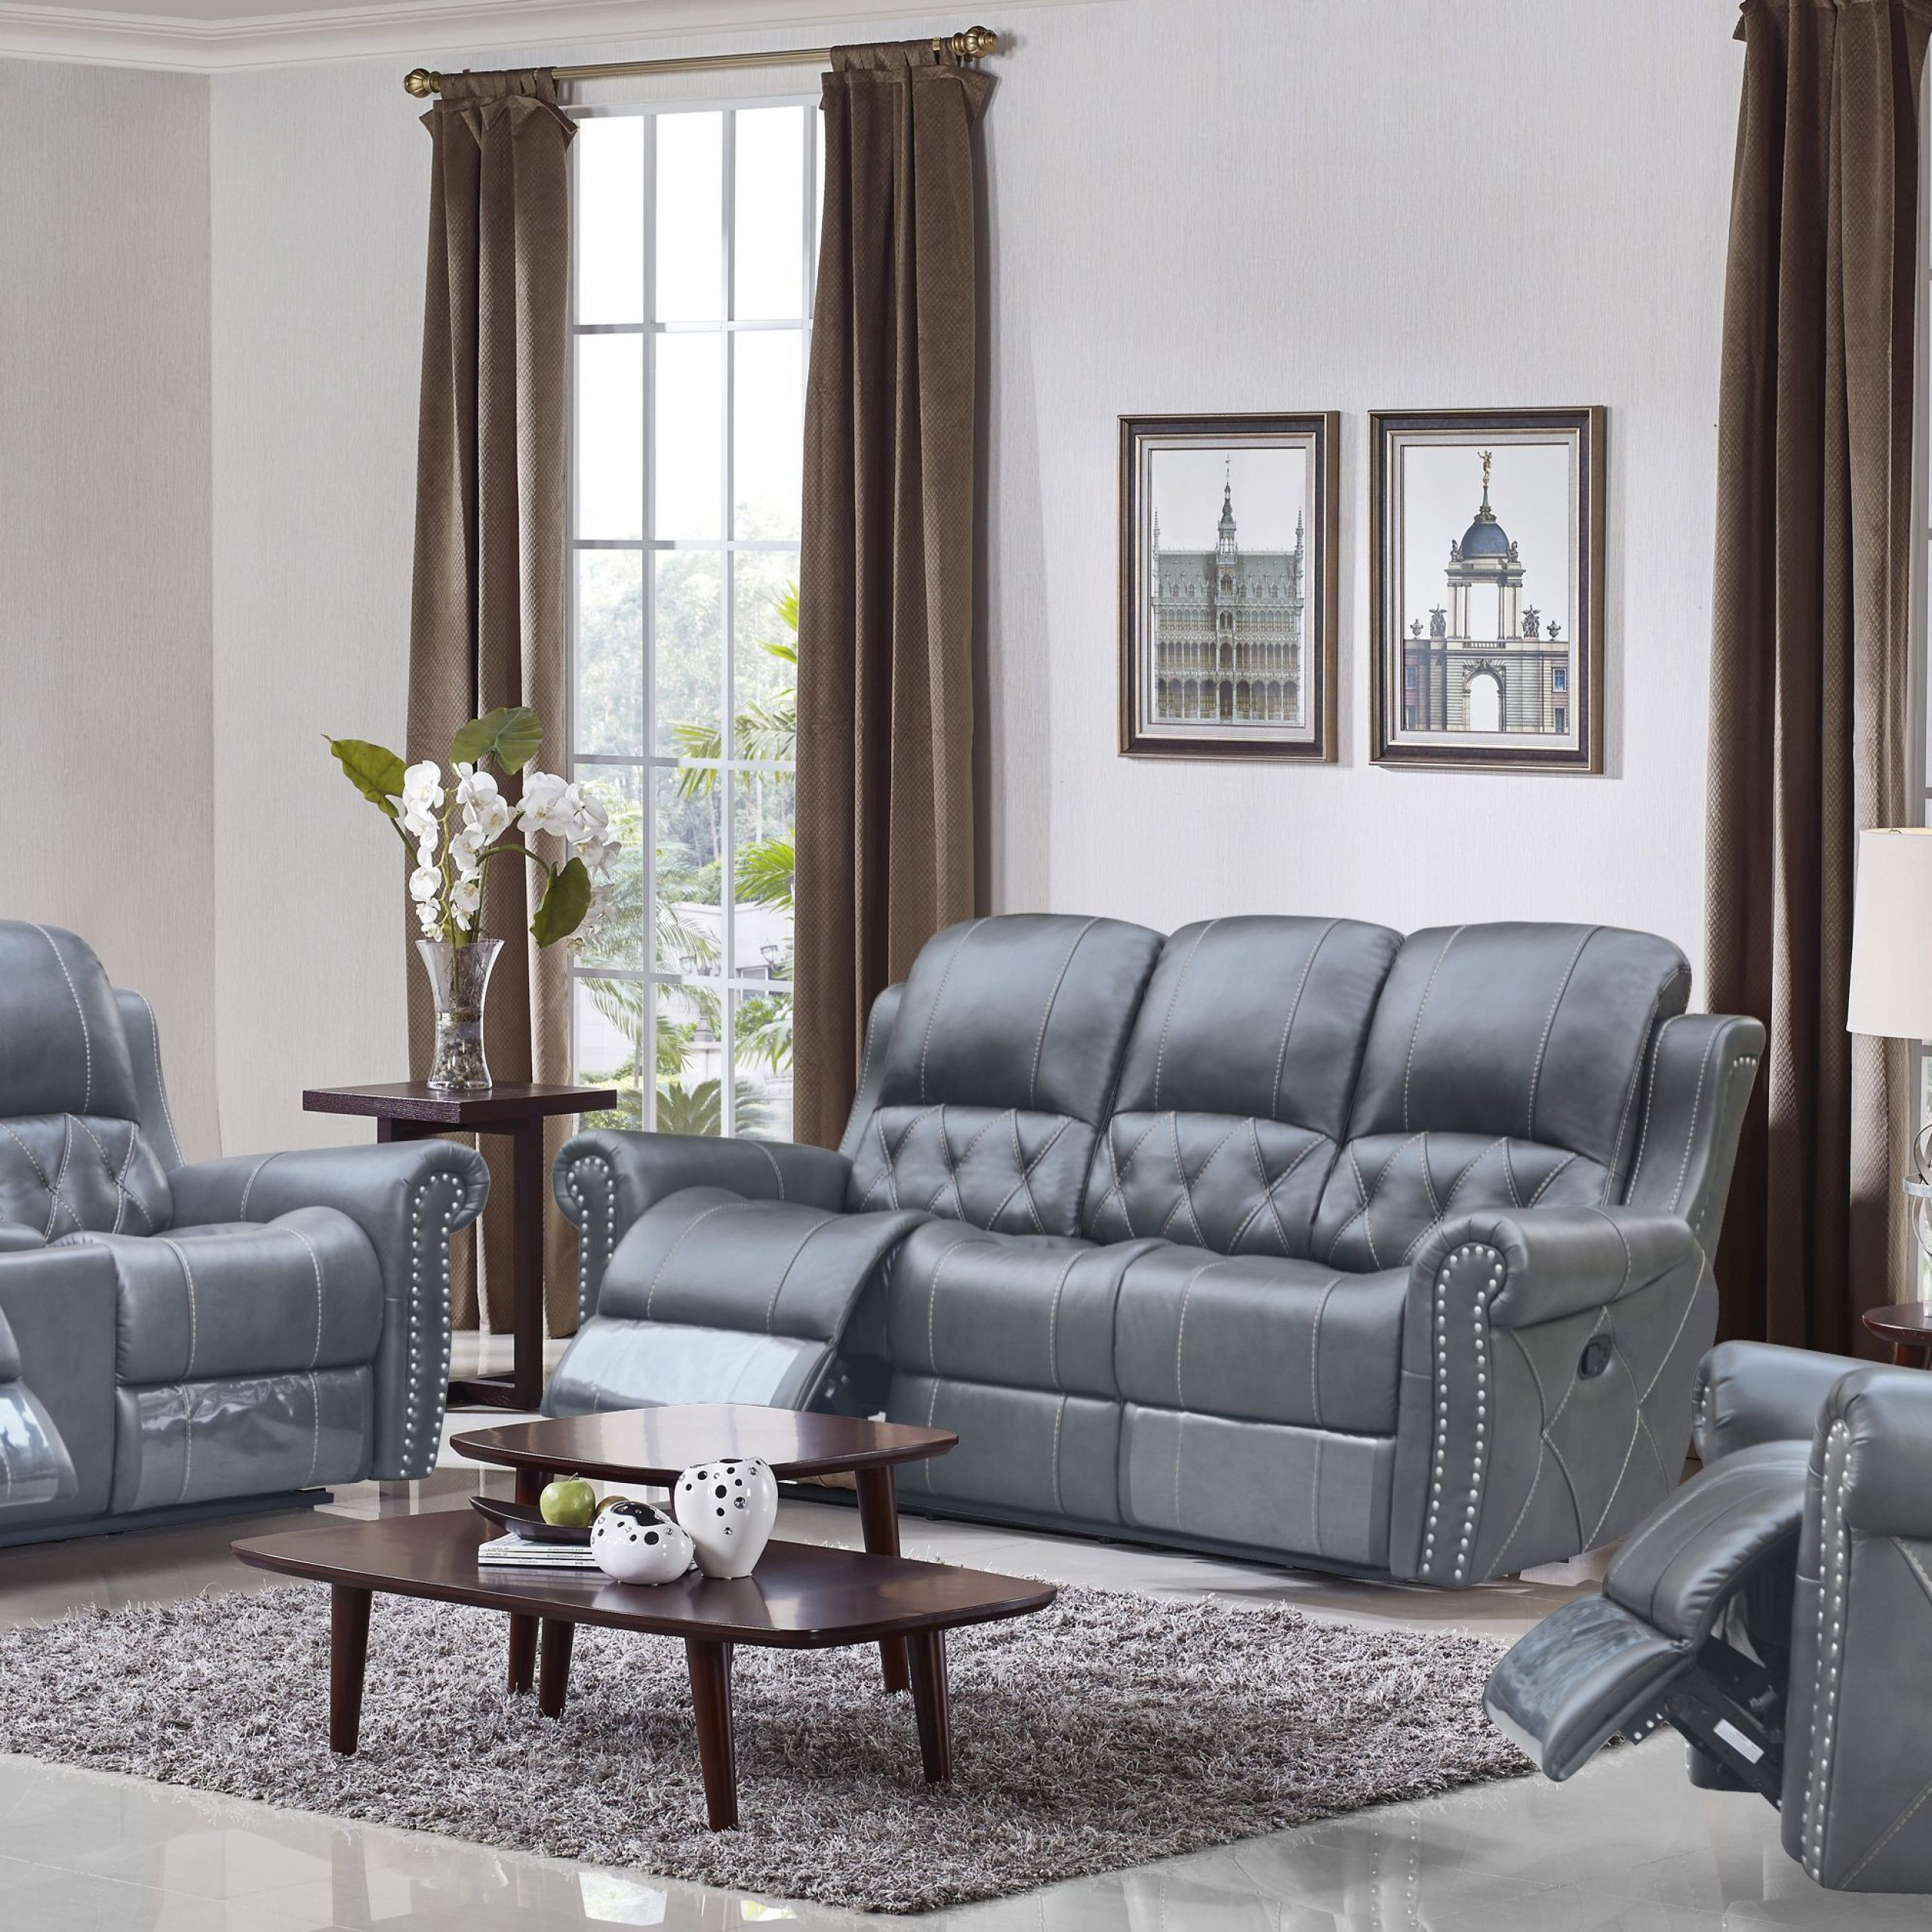 Gray Reclining Sofas Pertaining To Well Liked Hunter Reclining Loveseat – Leather Air Code # G12 Gray (View 16 of 17)